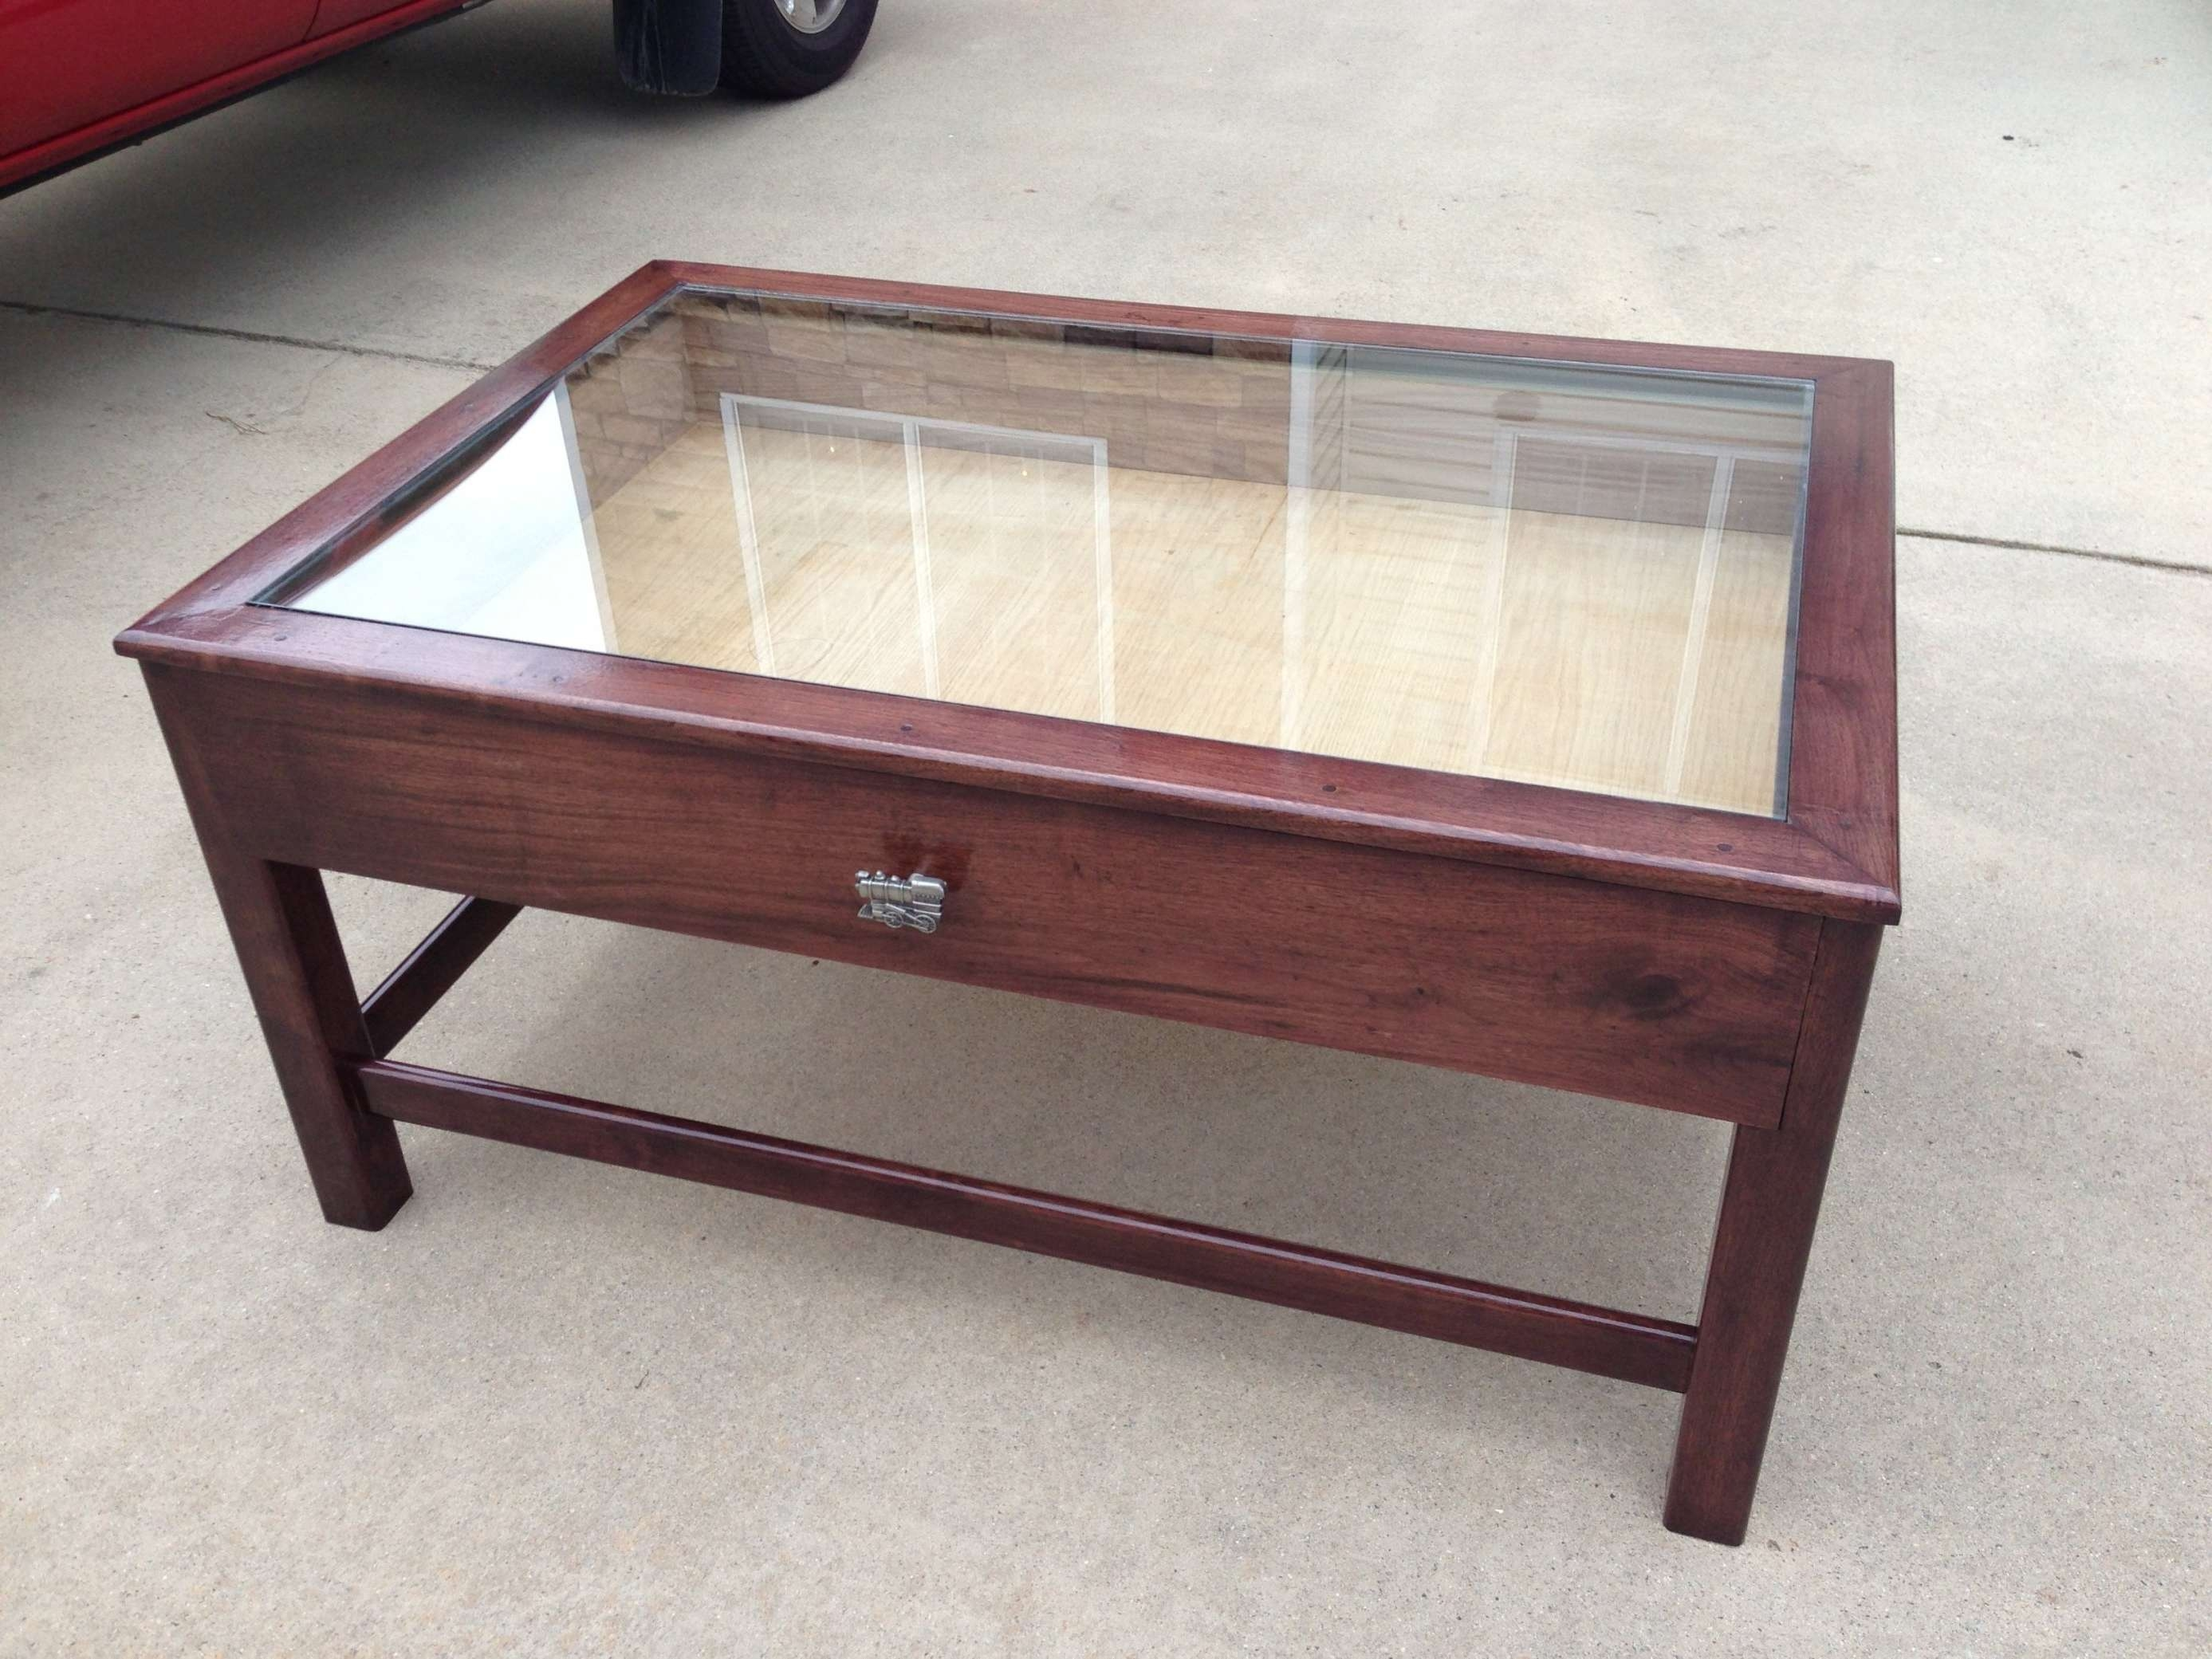 Most Up To Date Glass Top Display Coffee Tables With Drawers Inside Coffee Table: Marvelous Glass Top Display Coffee Table Ideas For (View 5 of 20)